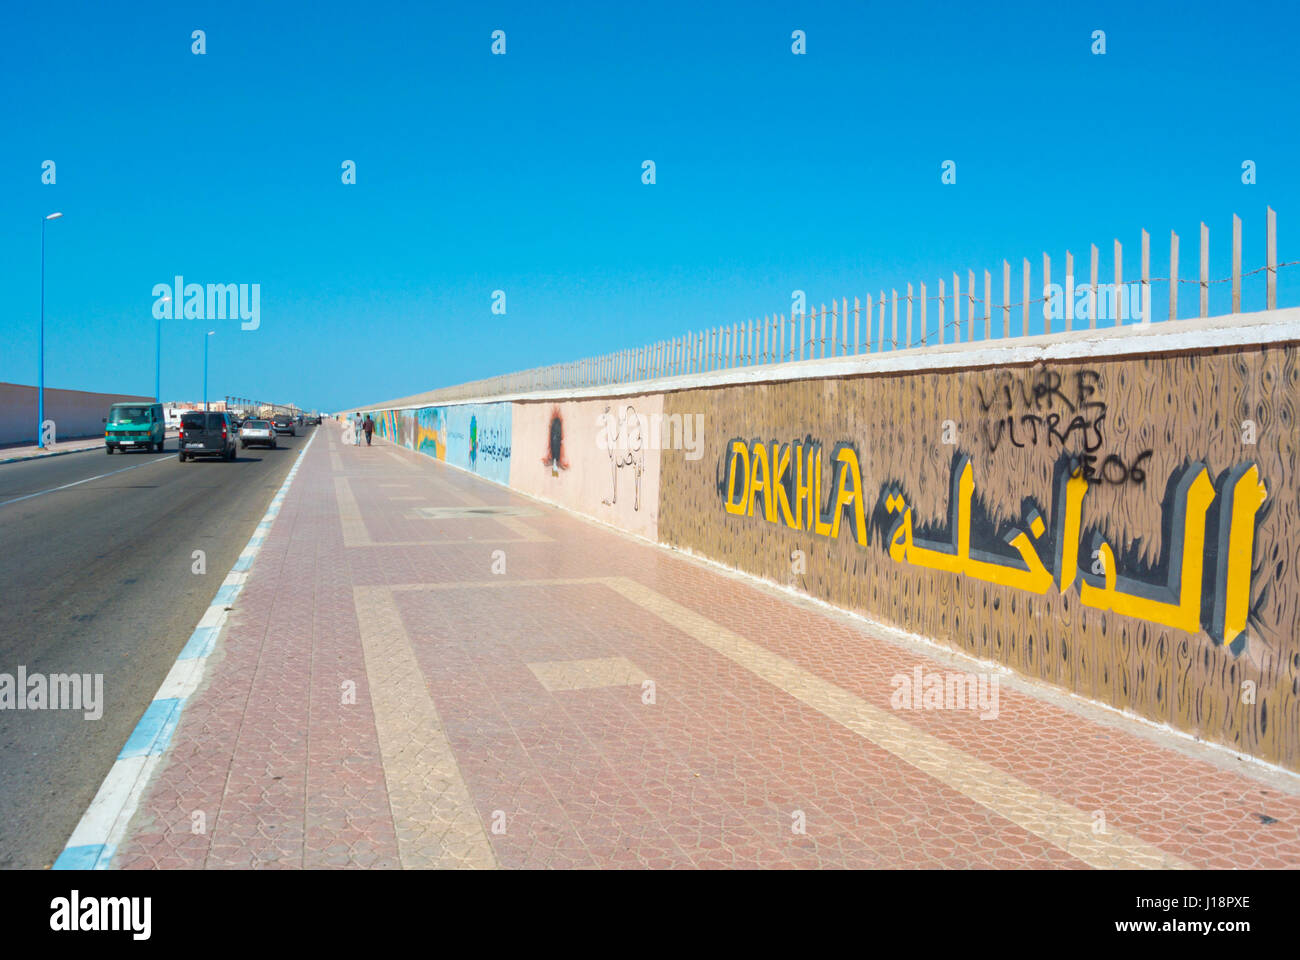 Boulevard Hassan II, going past the airport, Dakhla, Western Sahara, administered by Morocco, Africa - Stock Image